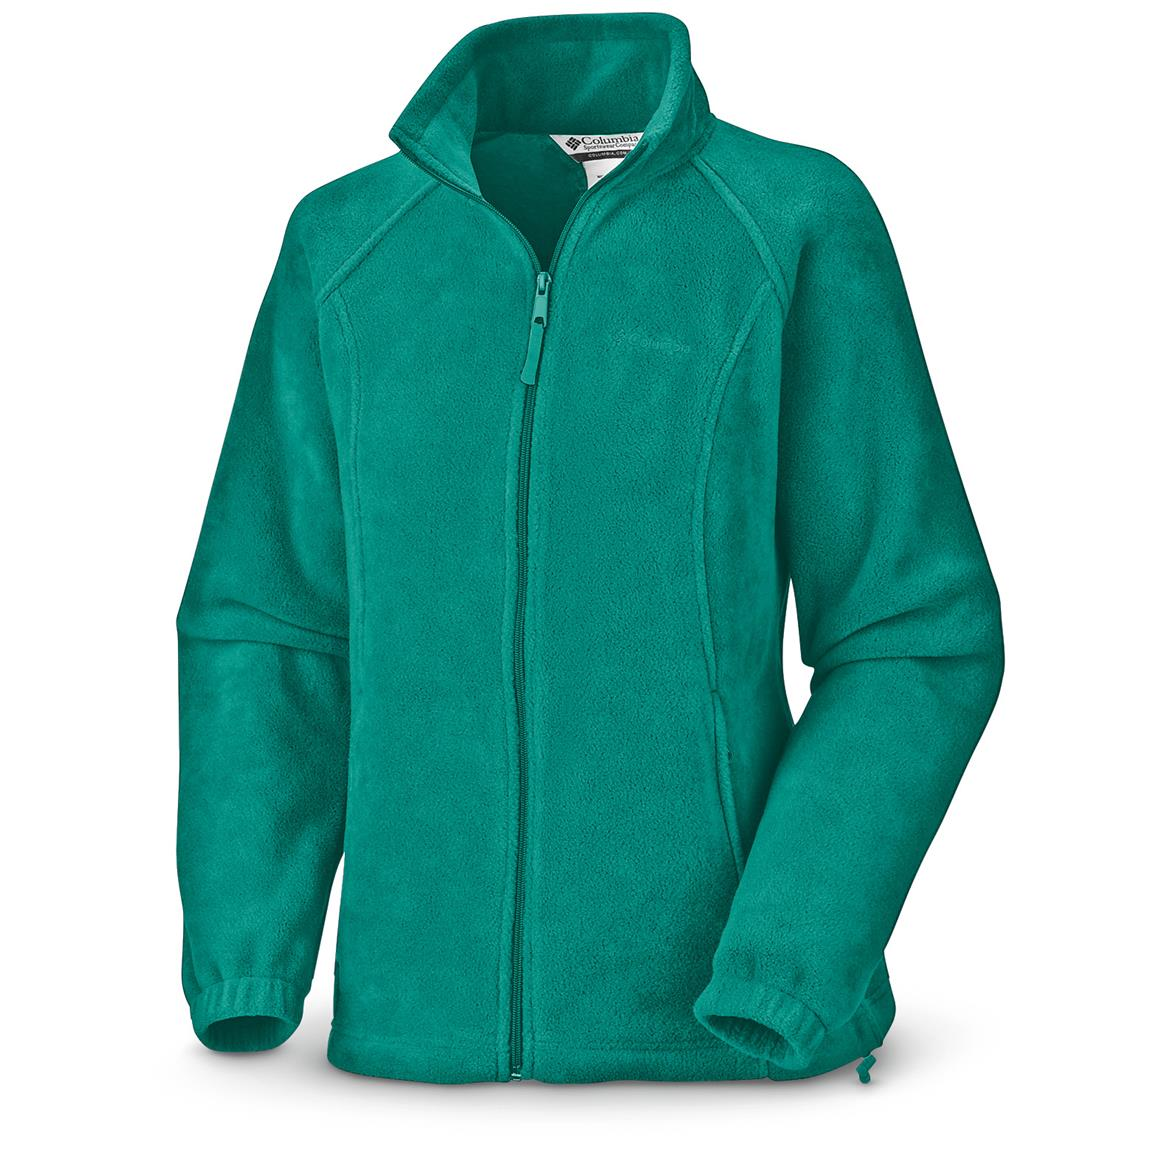 Columbia Women's Benton Springs Full-zip Fleece Jacket, Miami